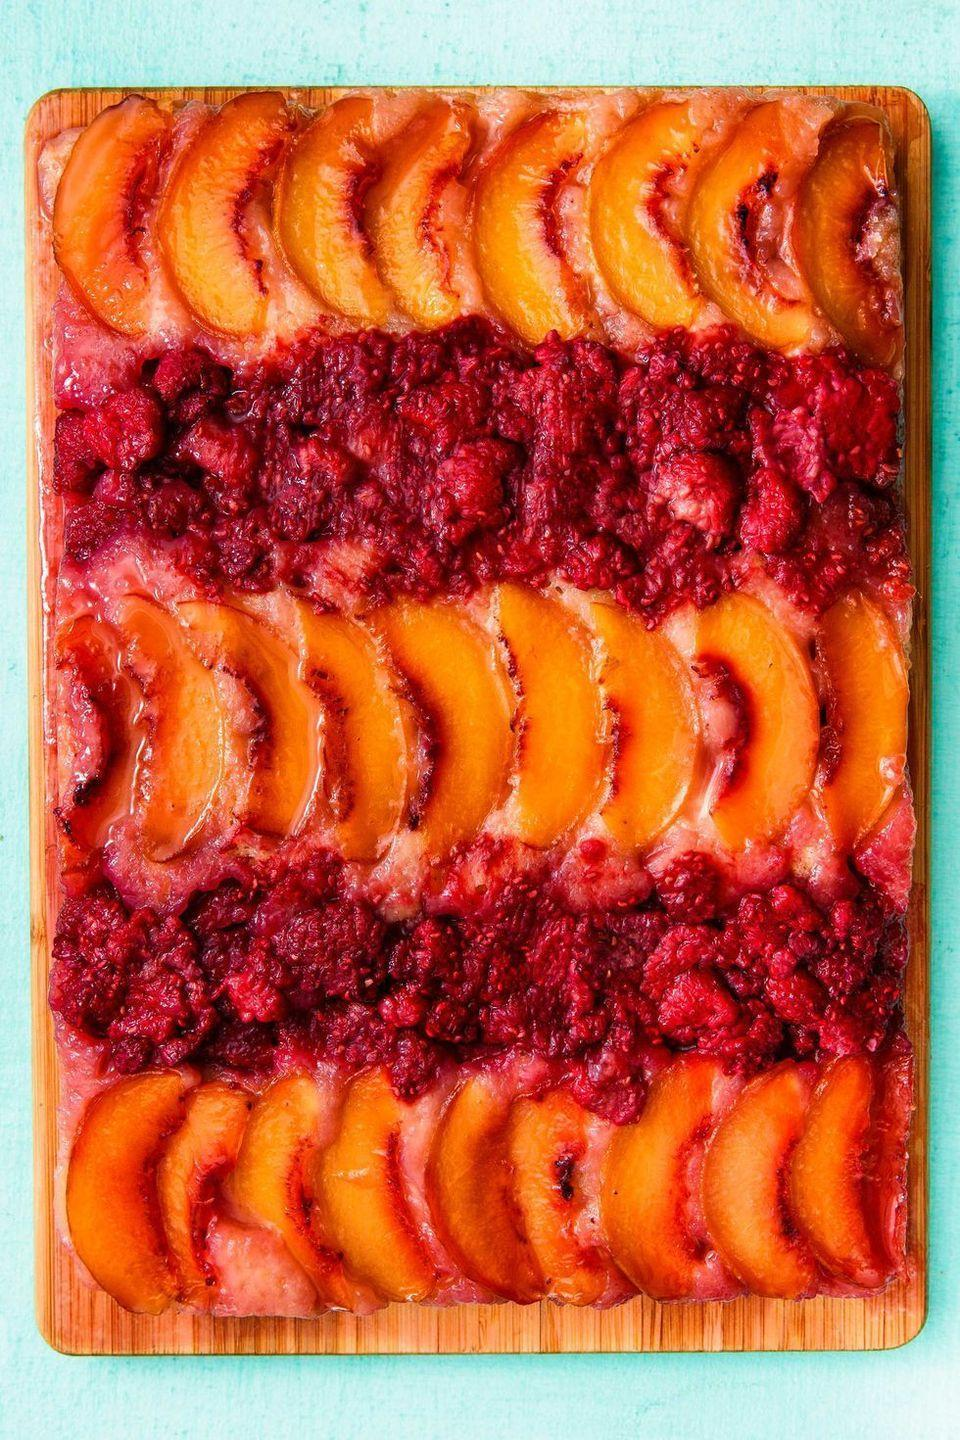 """<p>This cake is DANGEROUSLY good. Not to mention, it's a work of art!</p><p>Get the <a href=""""https://www.delish.com/uk/cooking/recipes/a32943108/raspberry-peach-upside-down-cake-recipe/"""" rel=""""nofollow noopener"""" target=""""_blank"""" data-ylk=""""slk:Raspberry Peach Upside-Down Cake"""" class=""""link rapid-noclick-resp"""">Raspberry Peach Upside-Down Cake</a> recipe.</p>"""